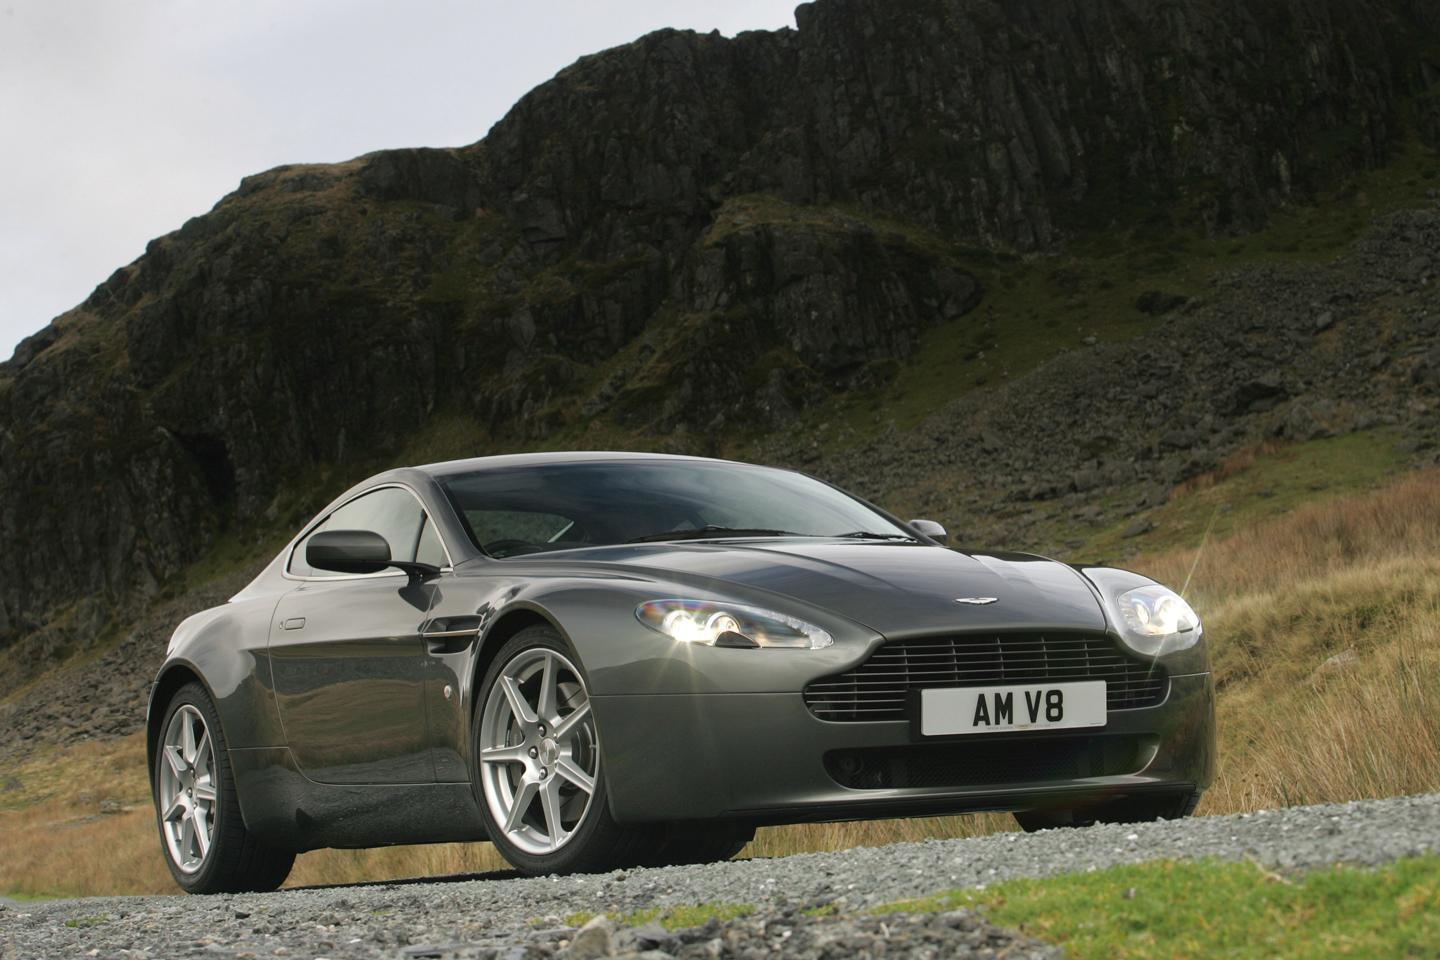 Aston Martin V8 Vantage Ph Used Buying Guide Pistonheads Uk